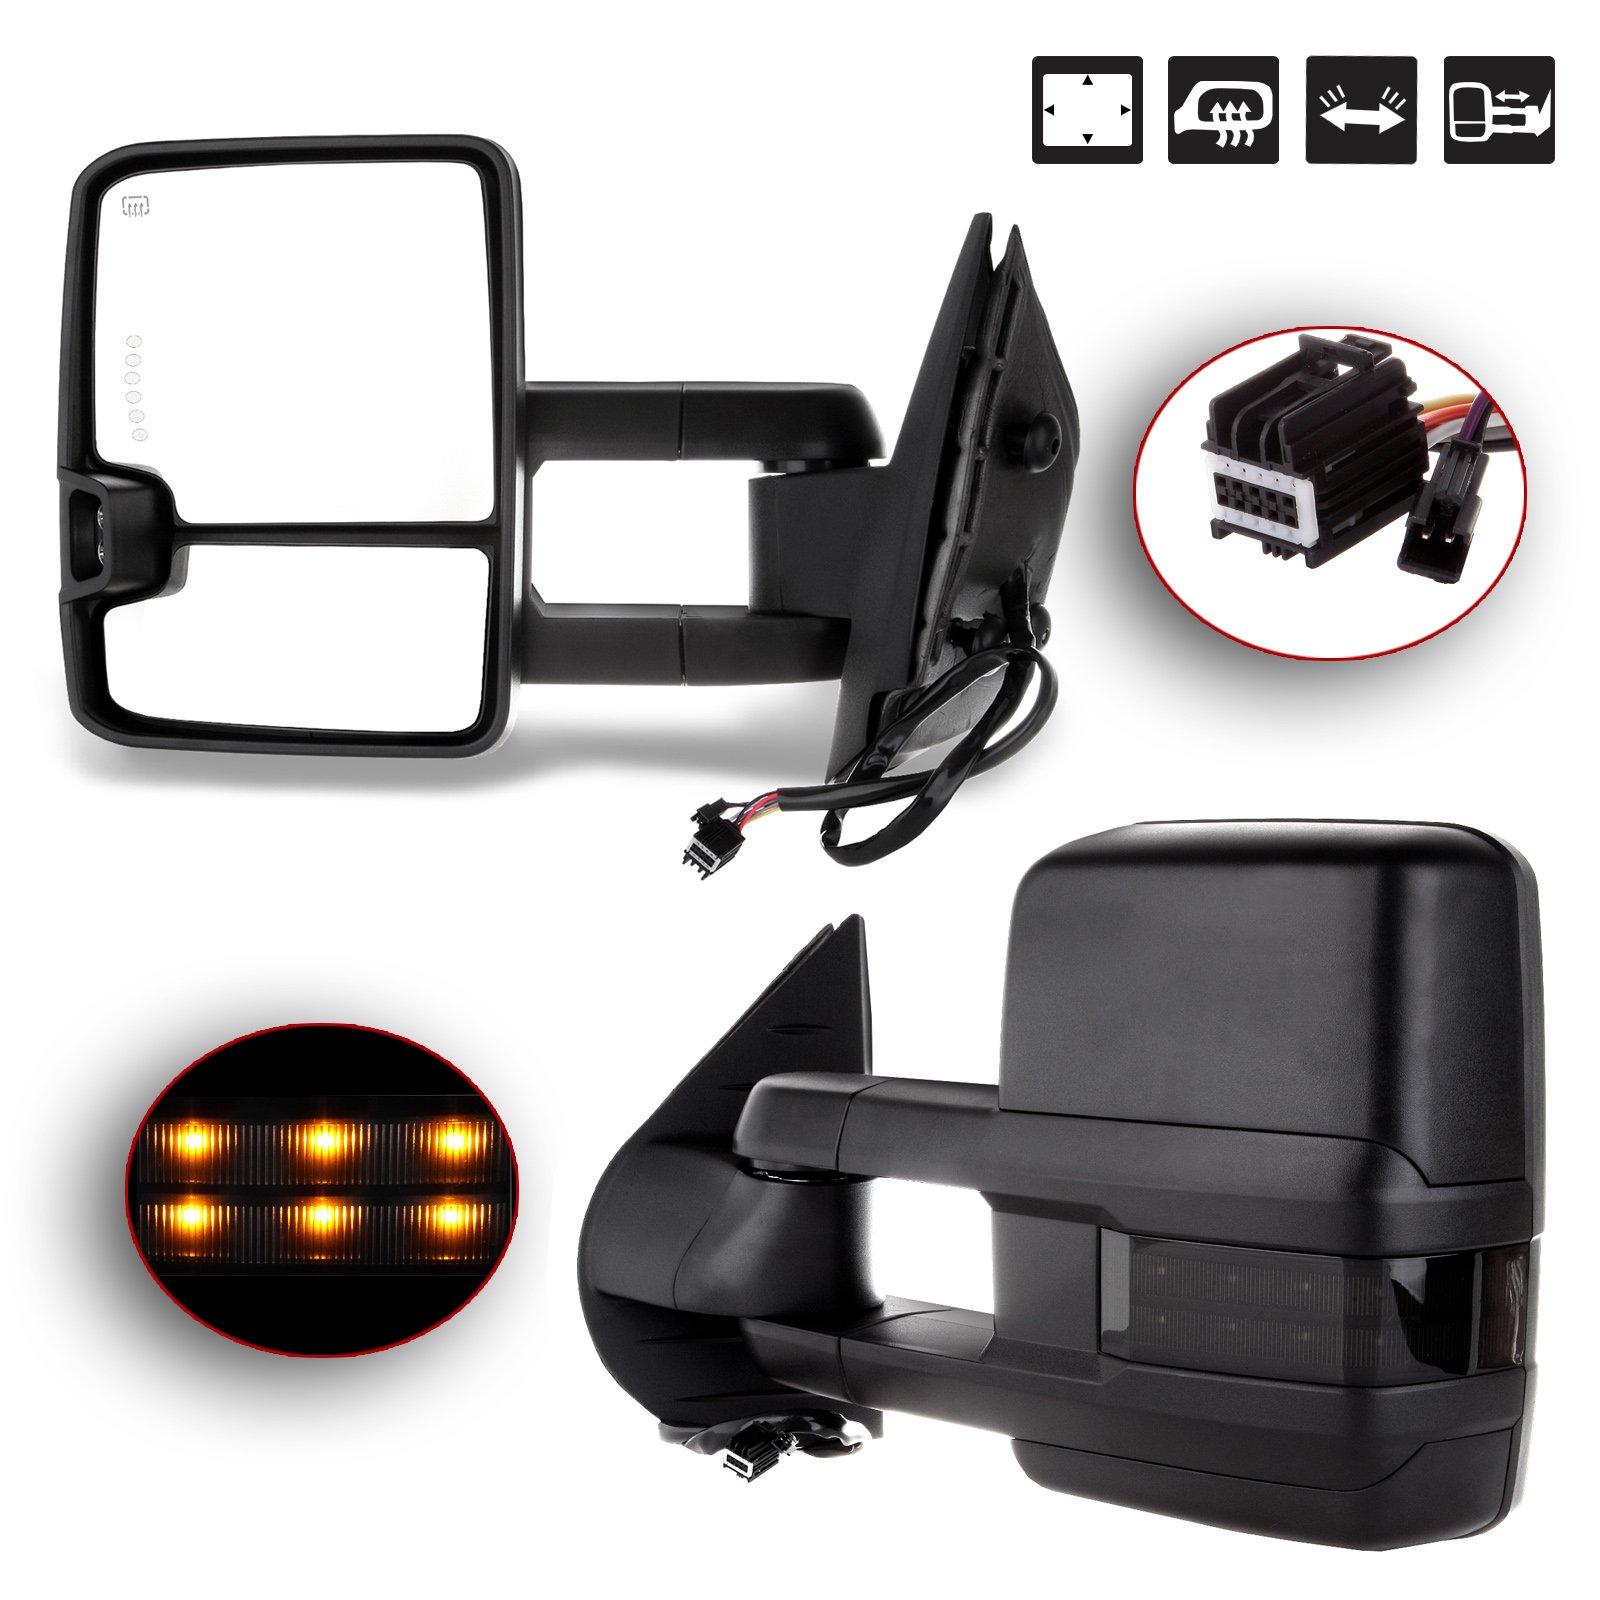 Towing Mirrors Automotive Exterior Mirrors for Chevy GMC 2007-2014 Silverado/Sierra Pair Rear View Mirrors with Power Control Heated Turn Signal Backup Light Manual Telescoping Folding by SCITOO